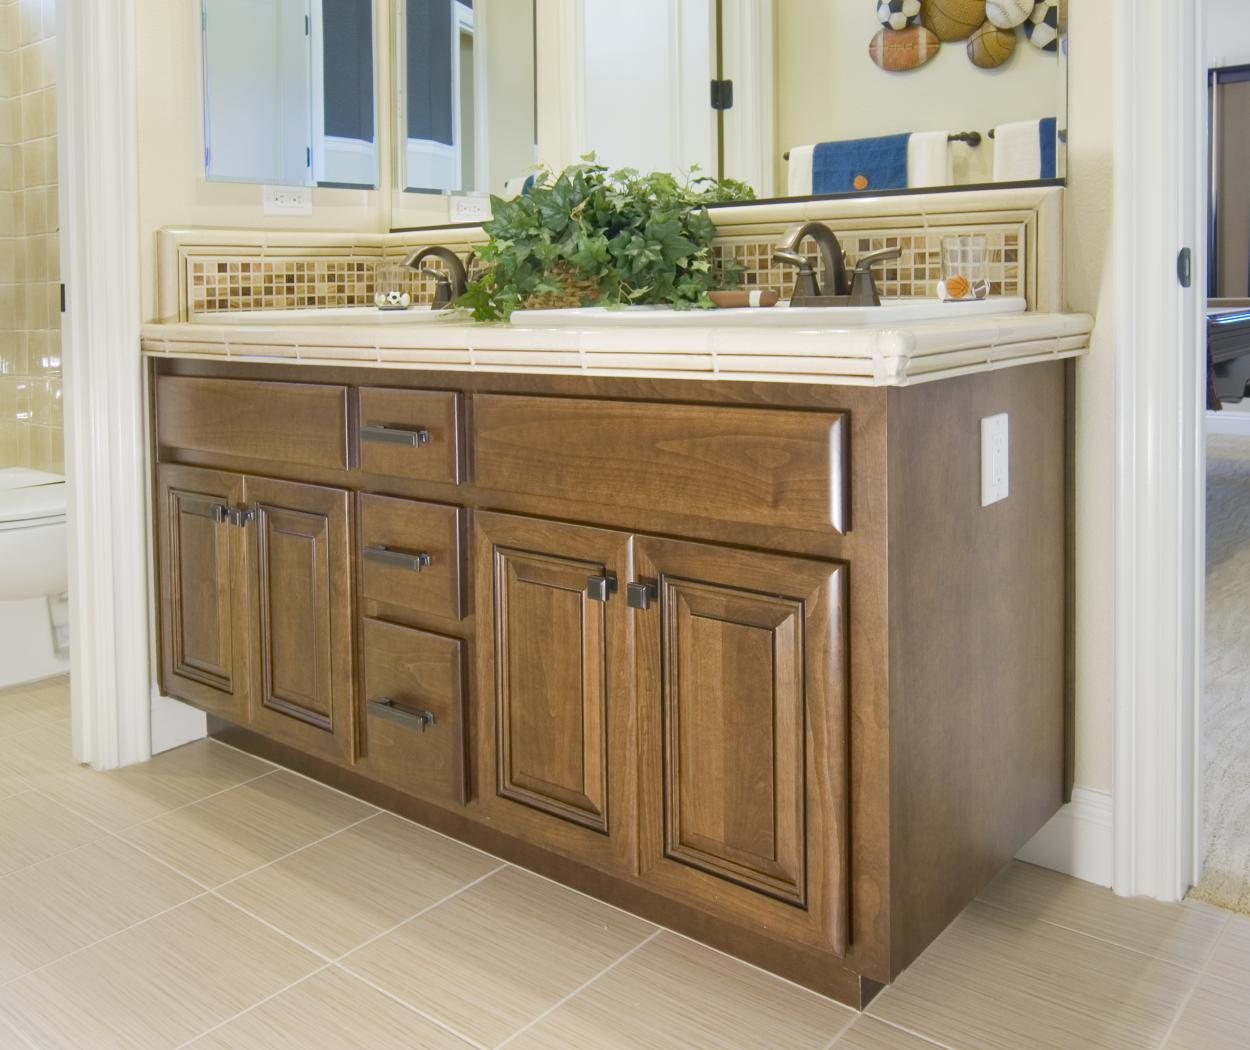 Traditional Stained Bathroom Vanity with a Tile Countertop and Oil Rubbed Bronze Hardware